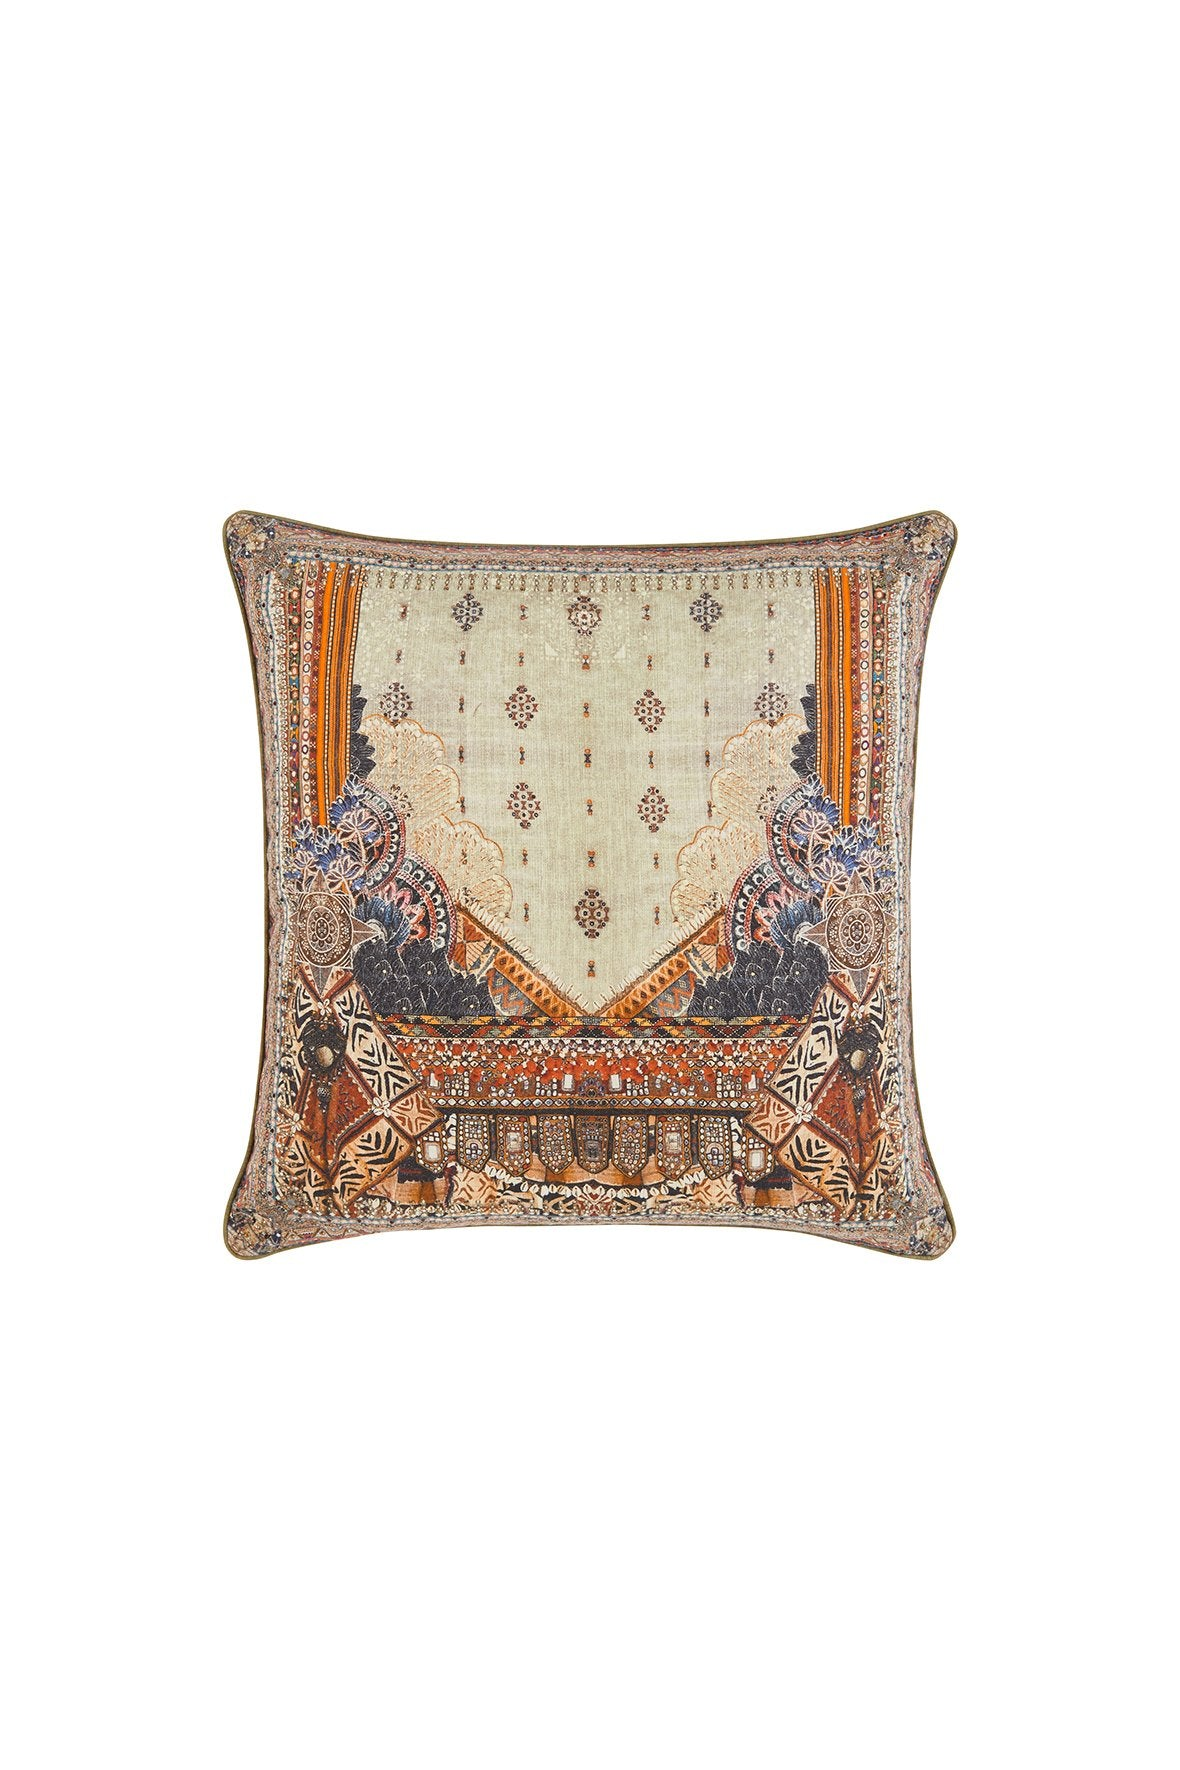 THE CARAVAN LARGE SQUARE CUSHION